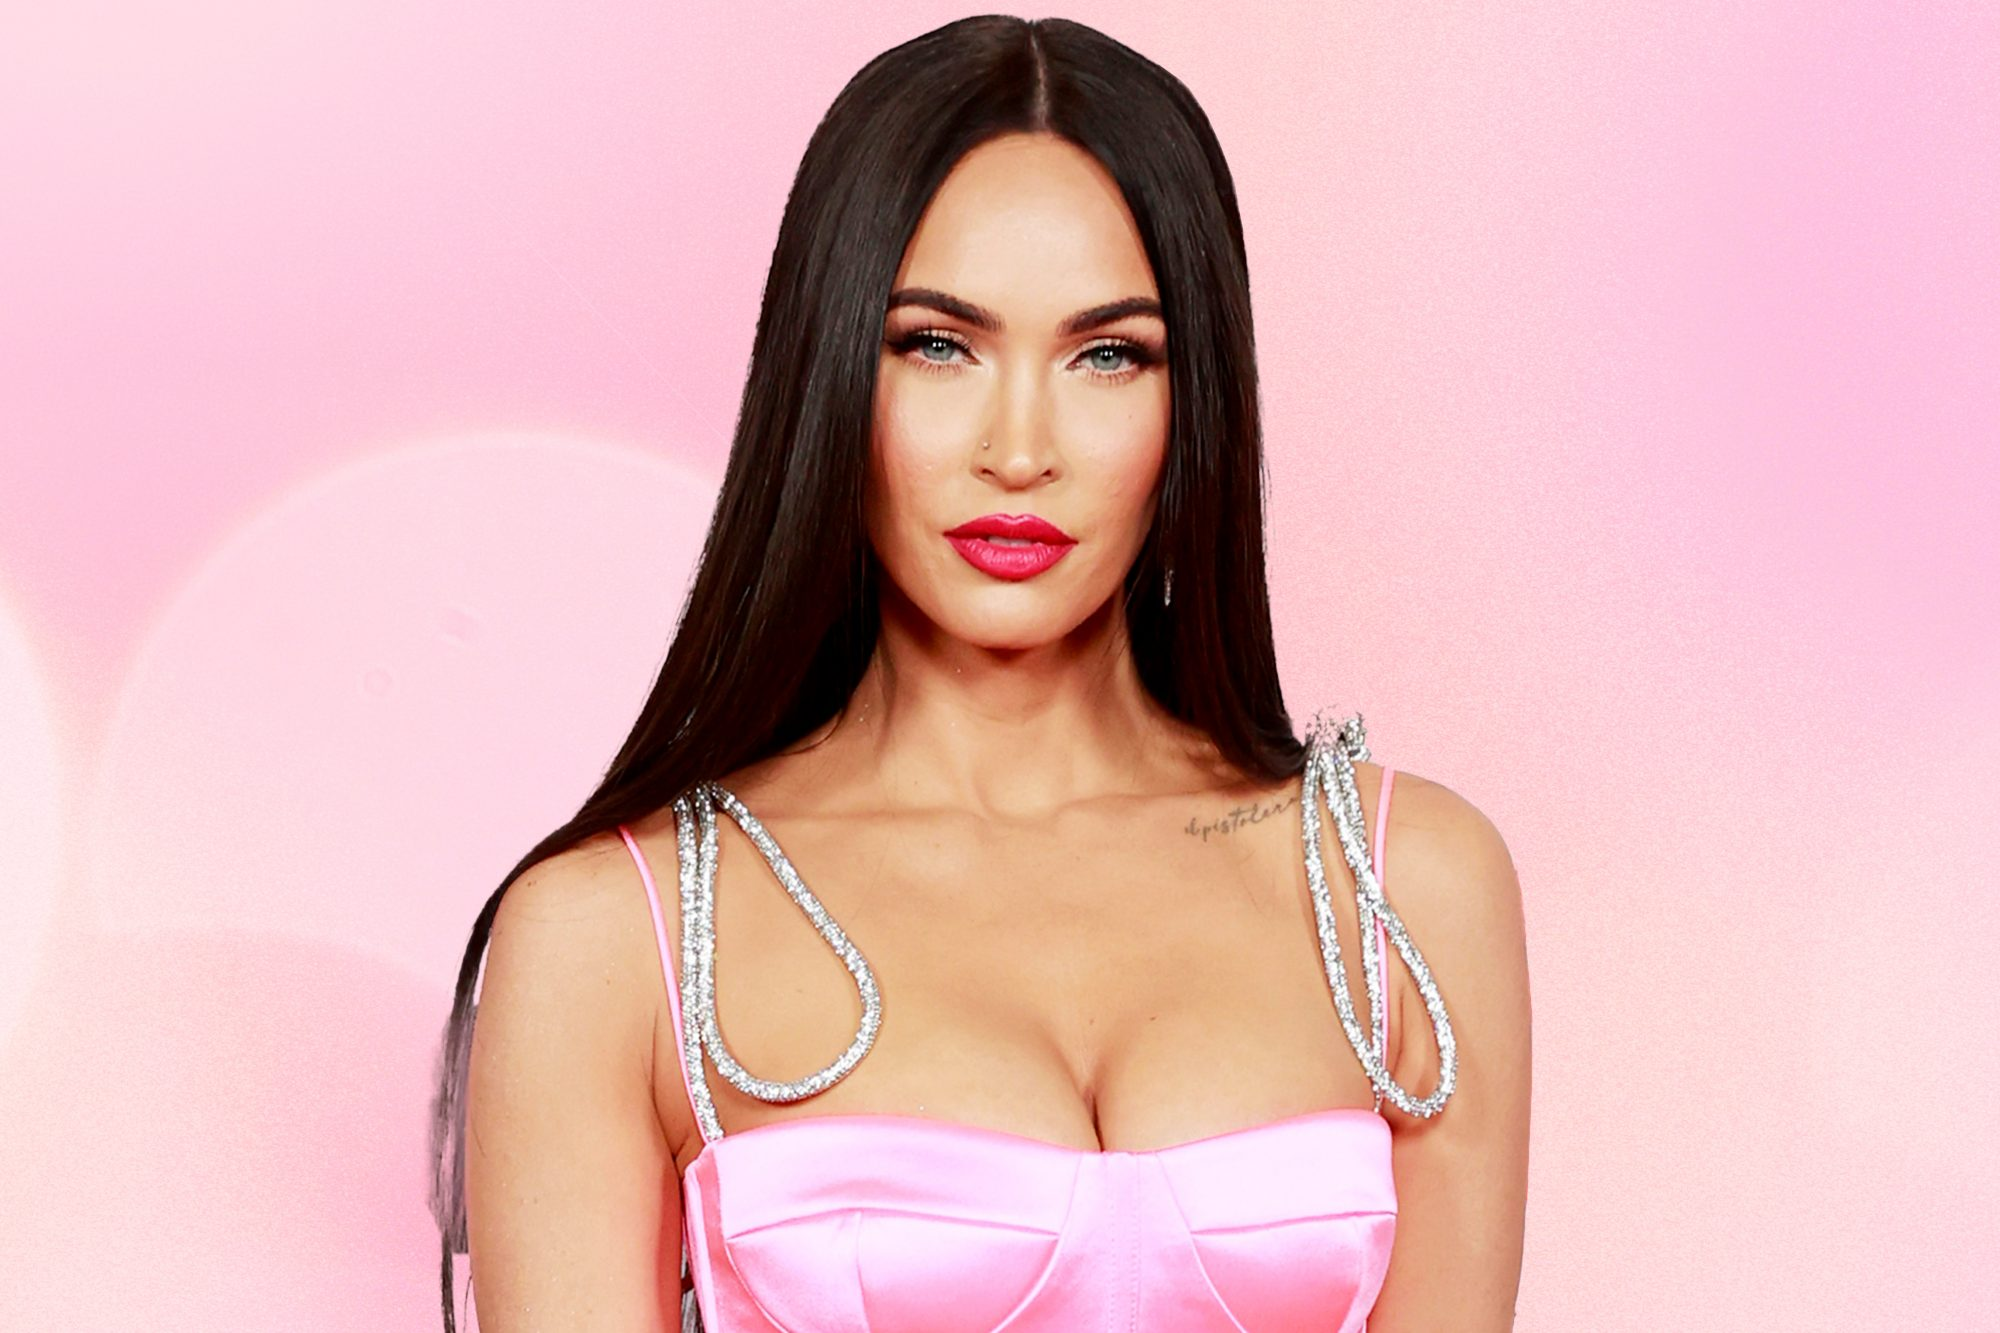 Megan-Fox-Opened-Up-About-Having-Body-Dysmorphia-I-Have-A-Lot-of-Deep-Insecurities-GettyImages-1320410357